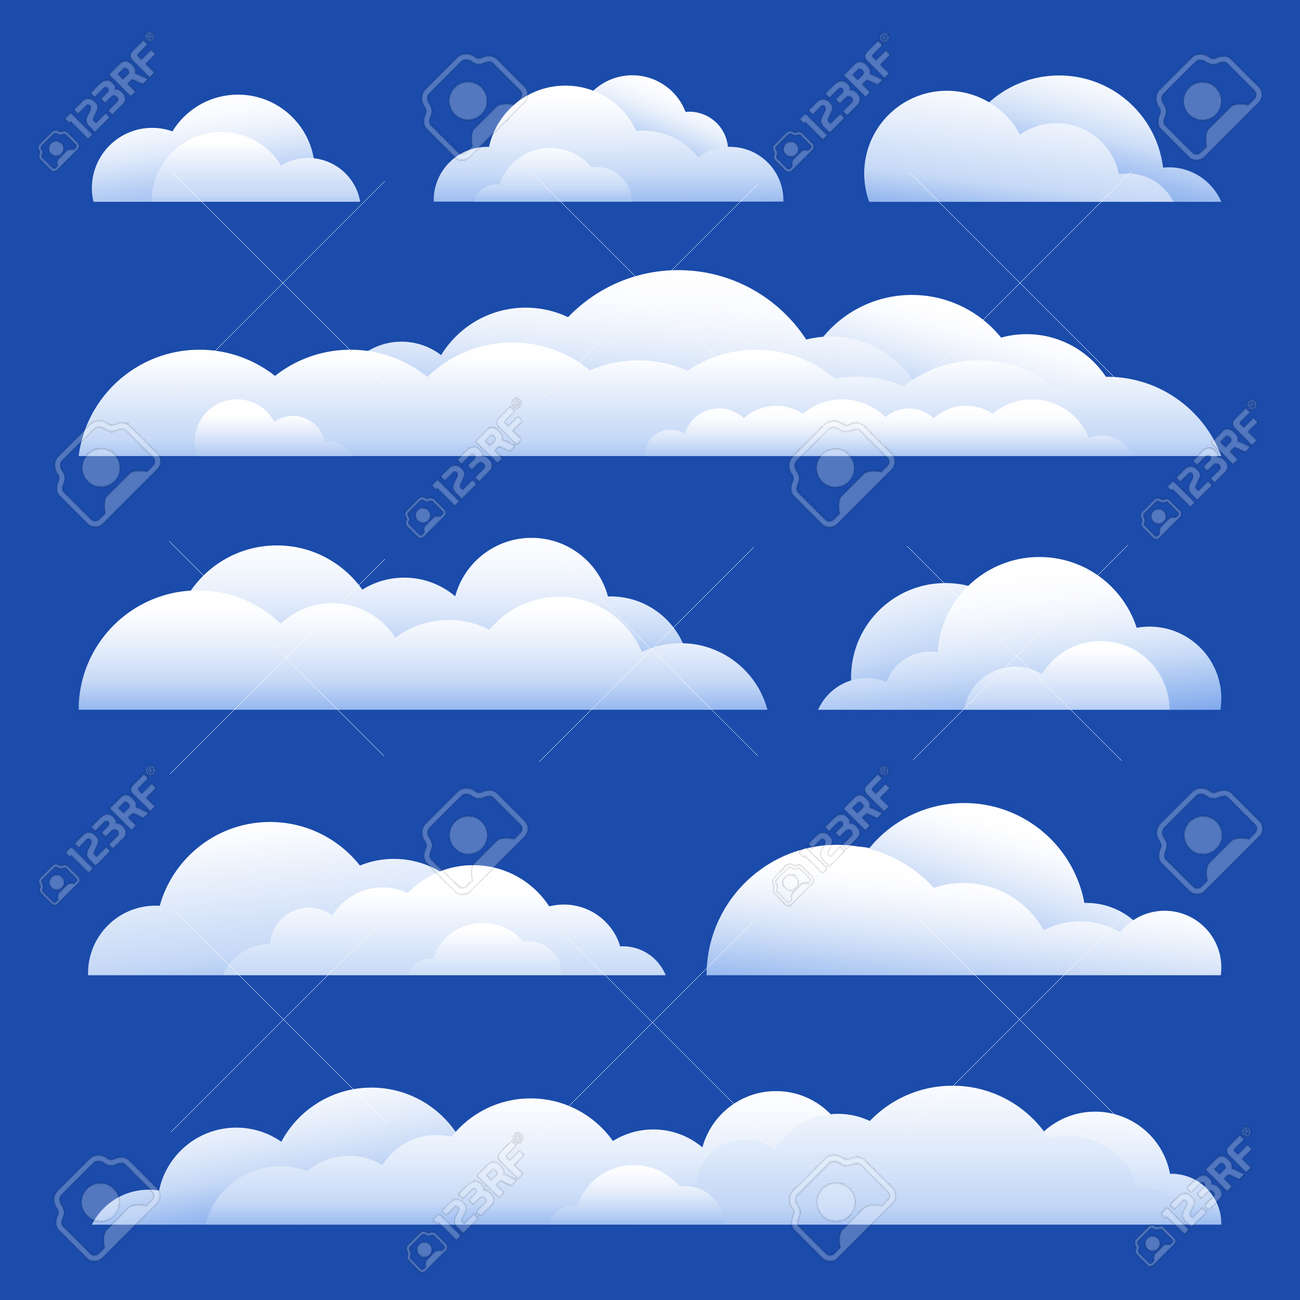 Vector Illustration. Set of clouds isolated on background - 169208437